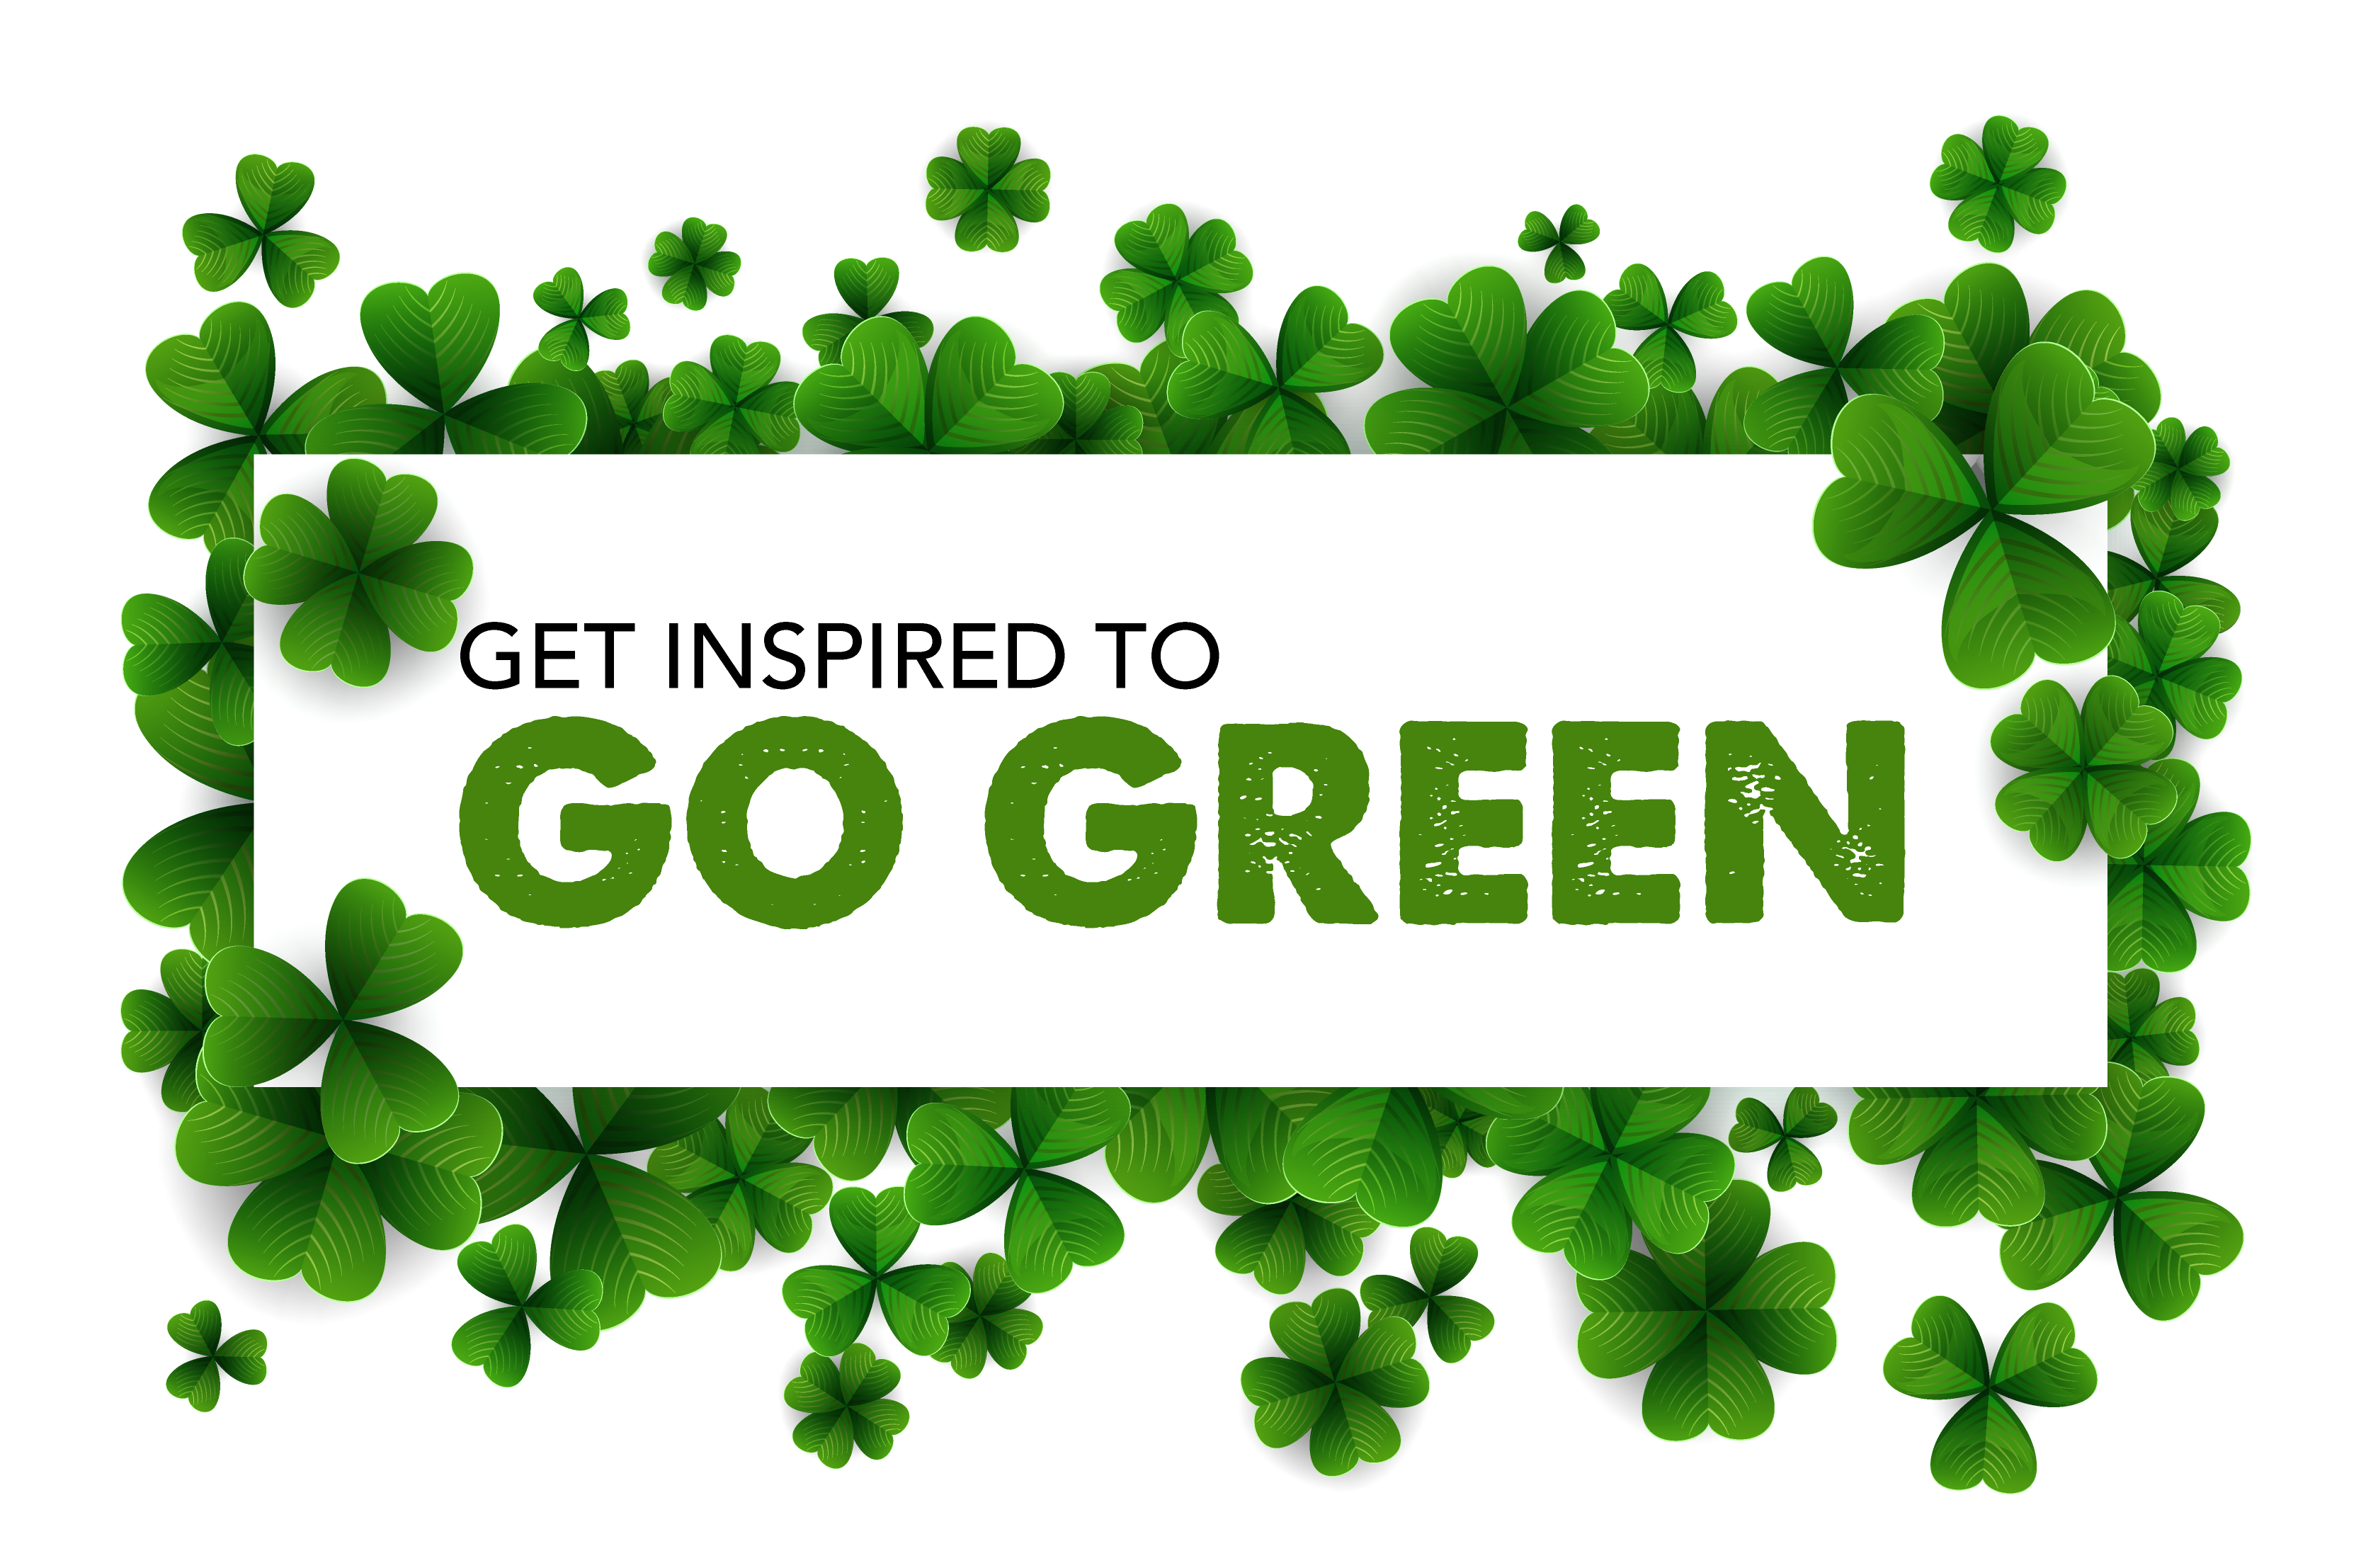 Go green at home for St. Patricks Day